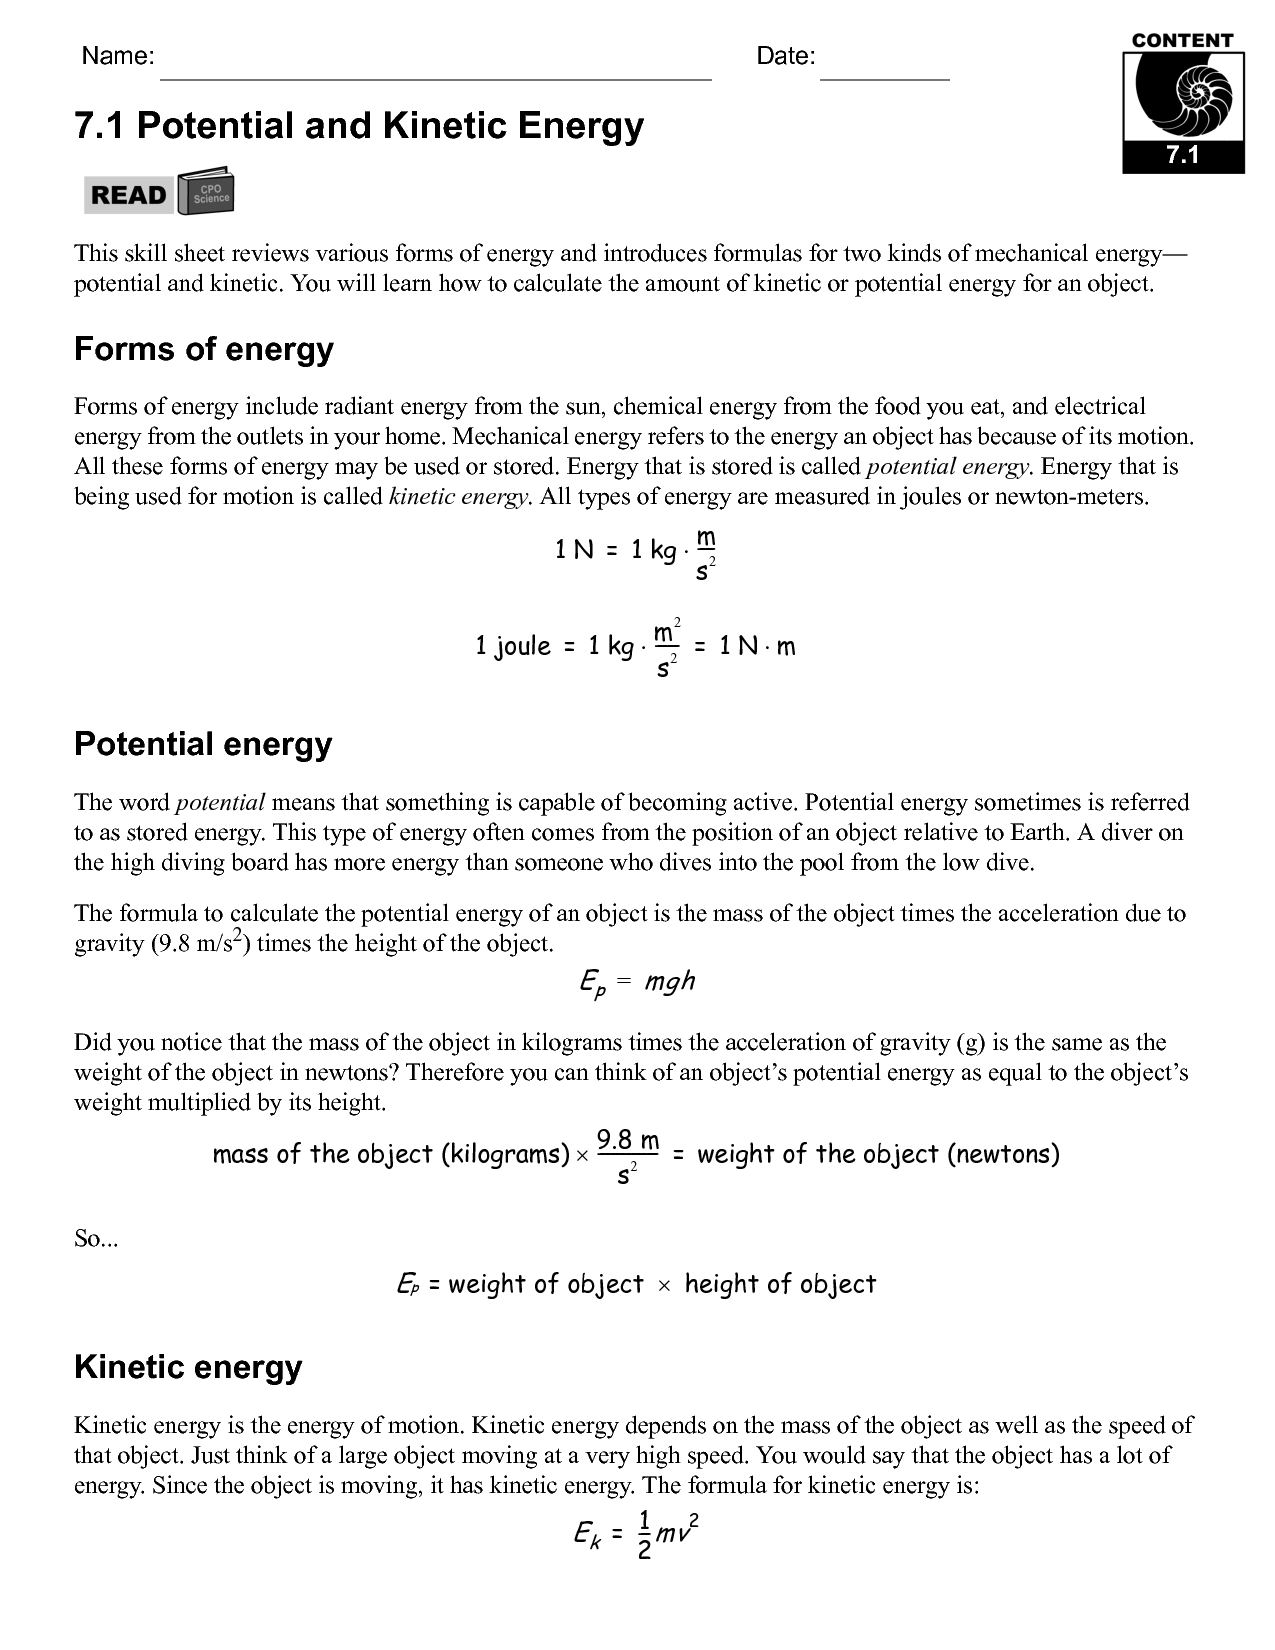 17 Best Images Of Potential Energy Practice Problems Worksheet